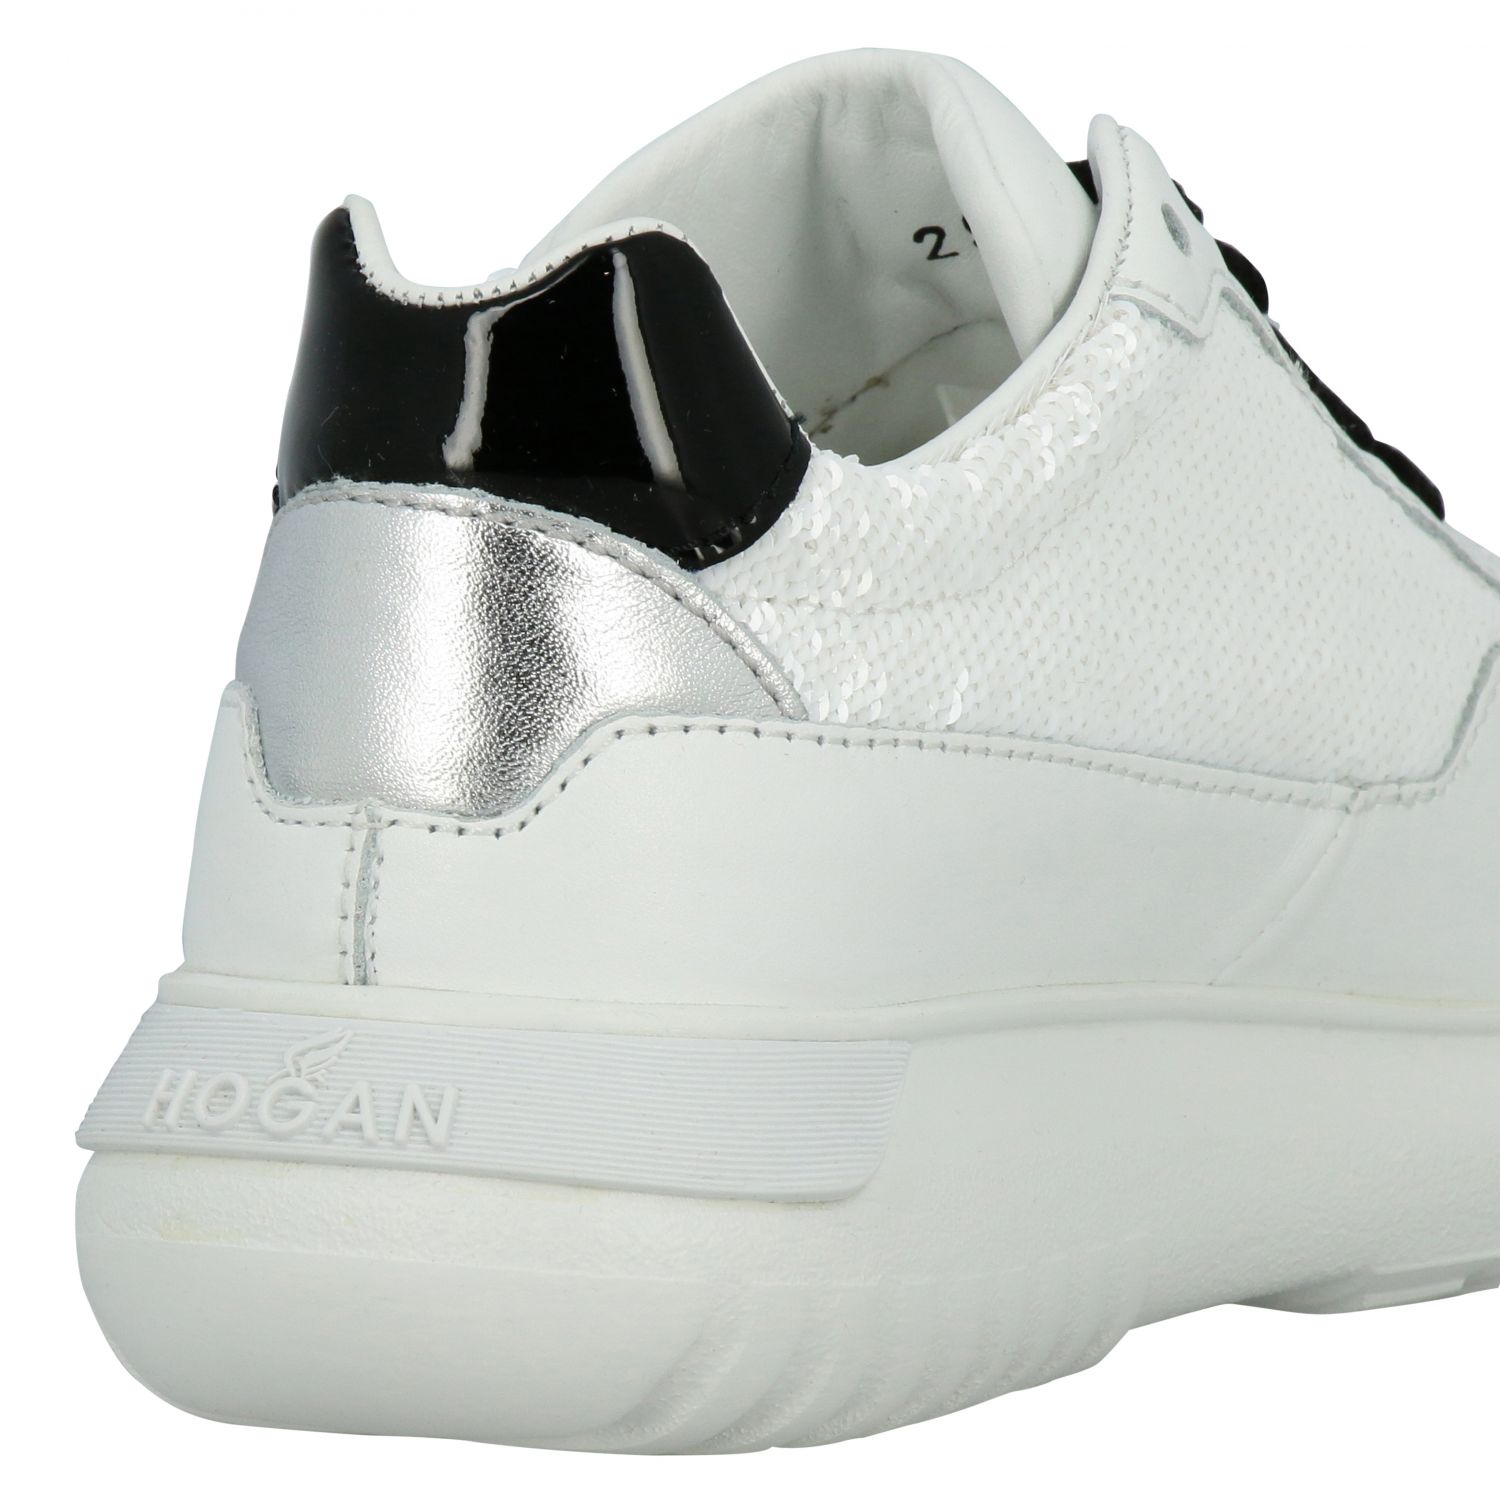 Cube Hogan sneakers in leather and sequins white 5